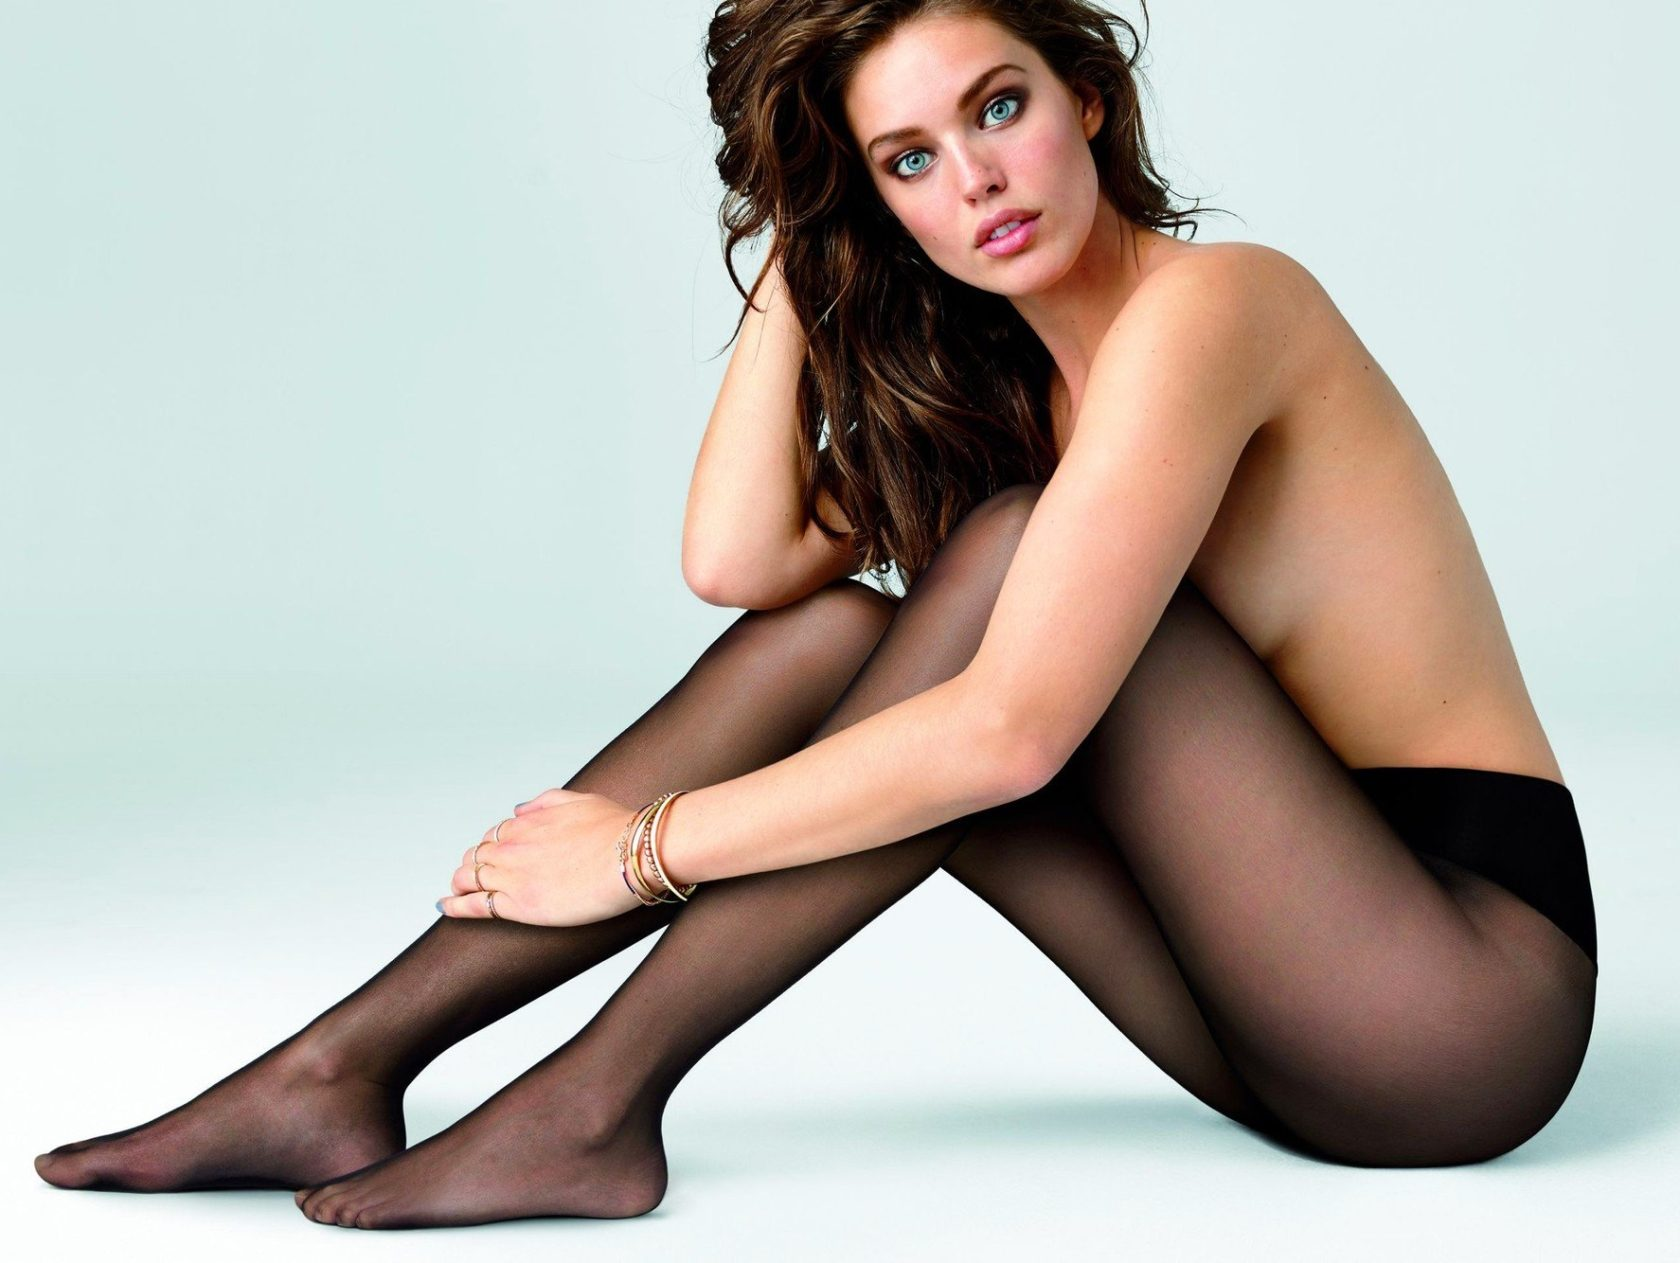 American fashion model Emily DiDonato poses in topless for Calzedonia 2015 advertising campaign., Image: 215281878, License: Rights-managed, Restrictions: EDITORIAL USE ONLY, Model Release: no, Credit line: Profimedia, Balawa Pics